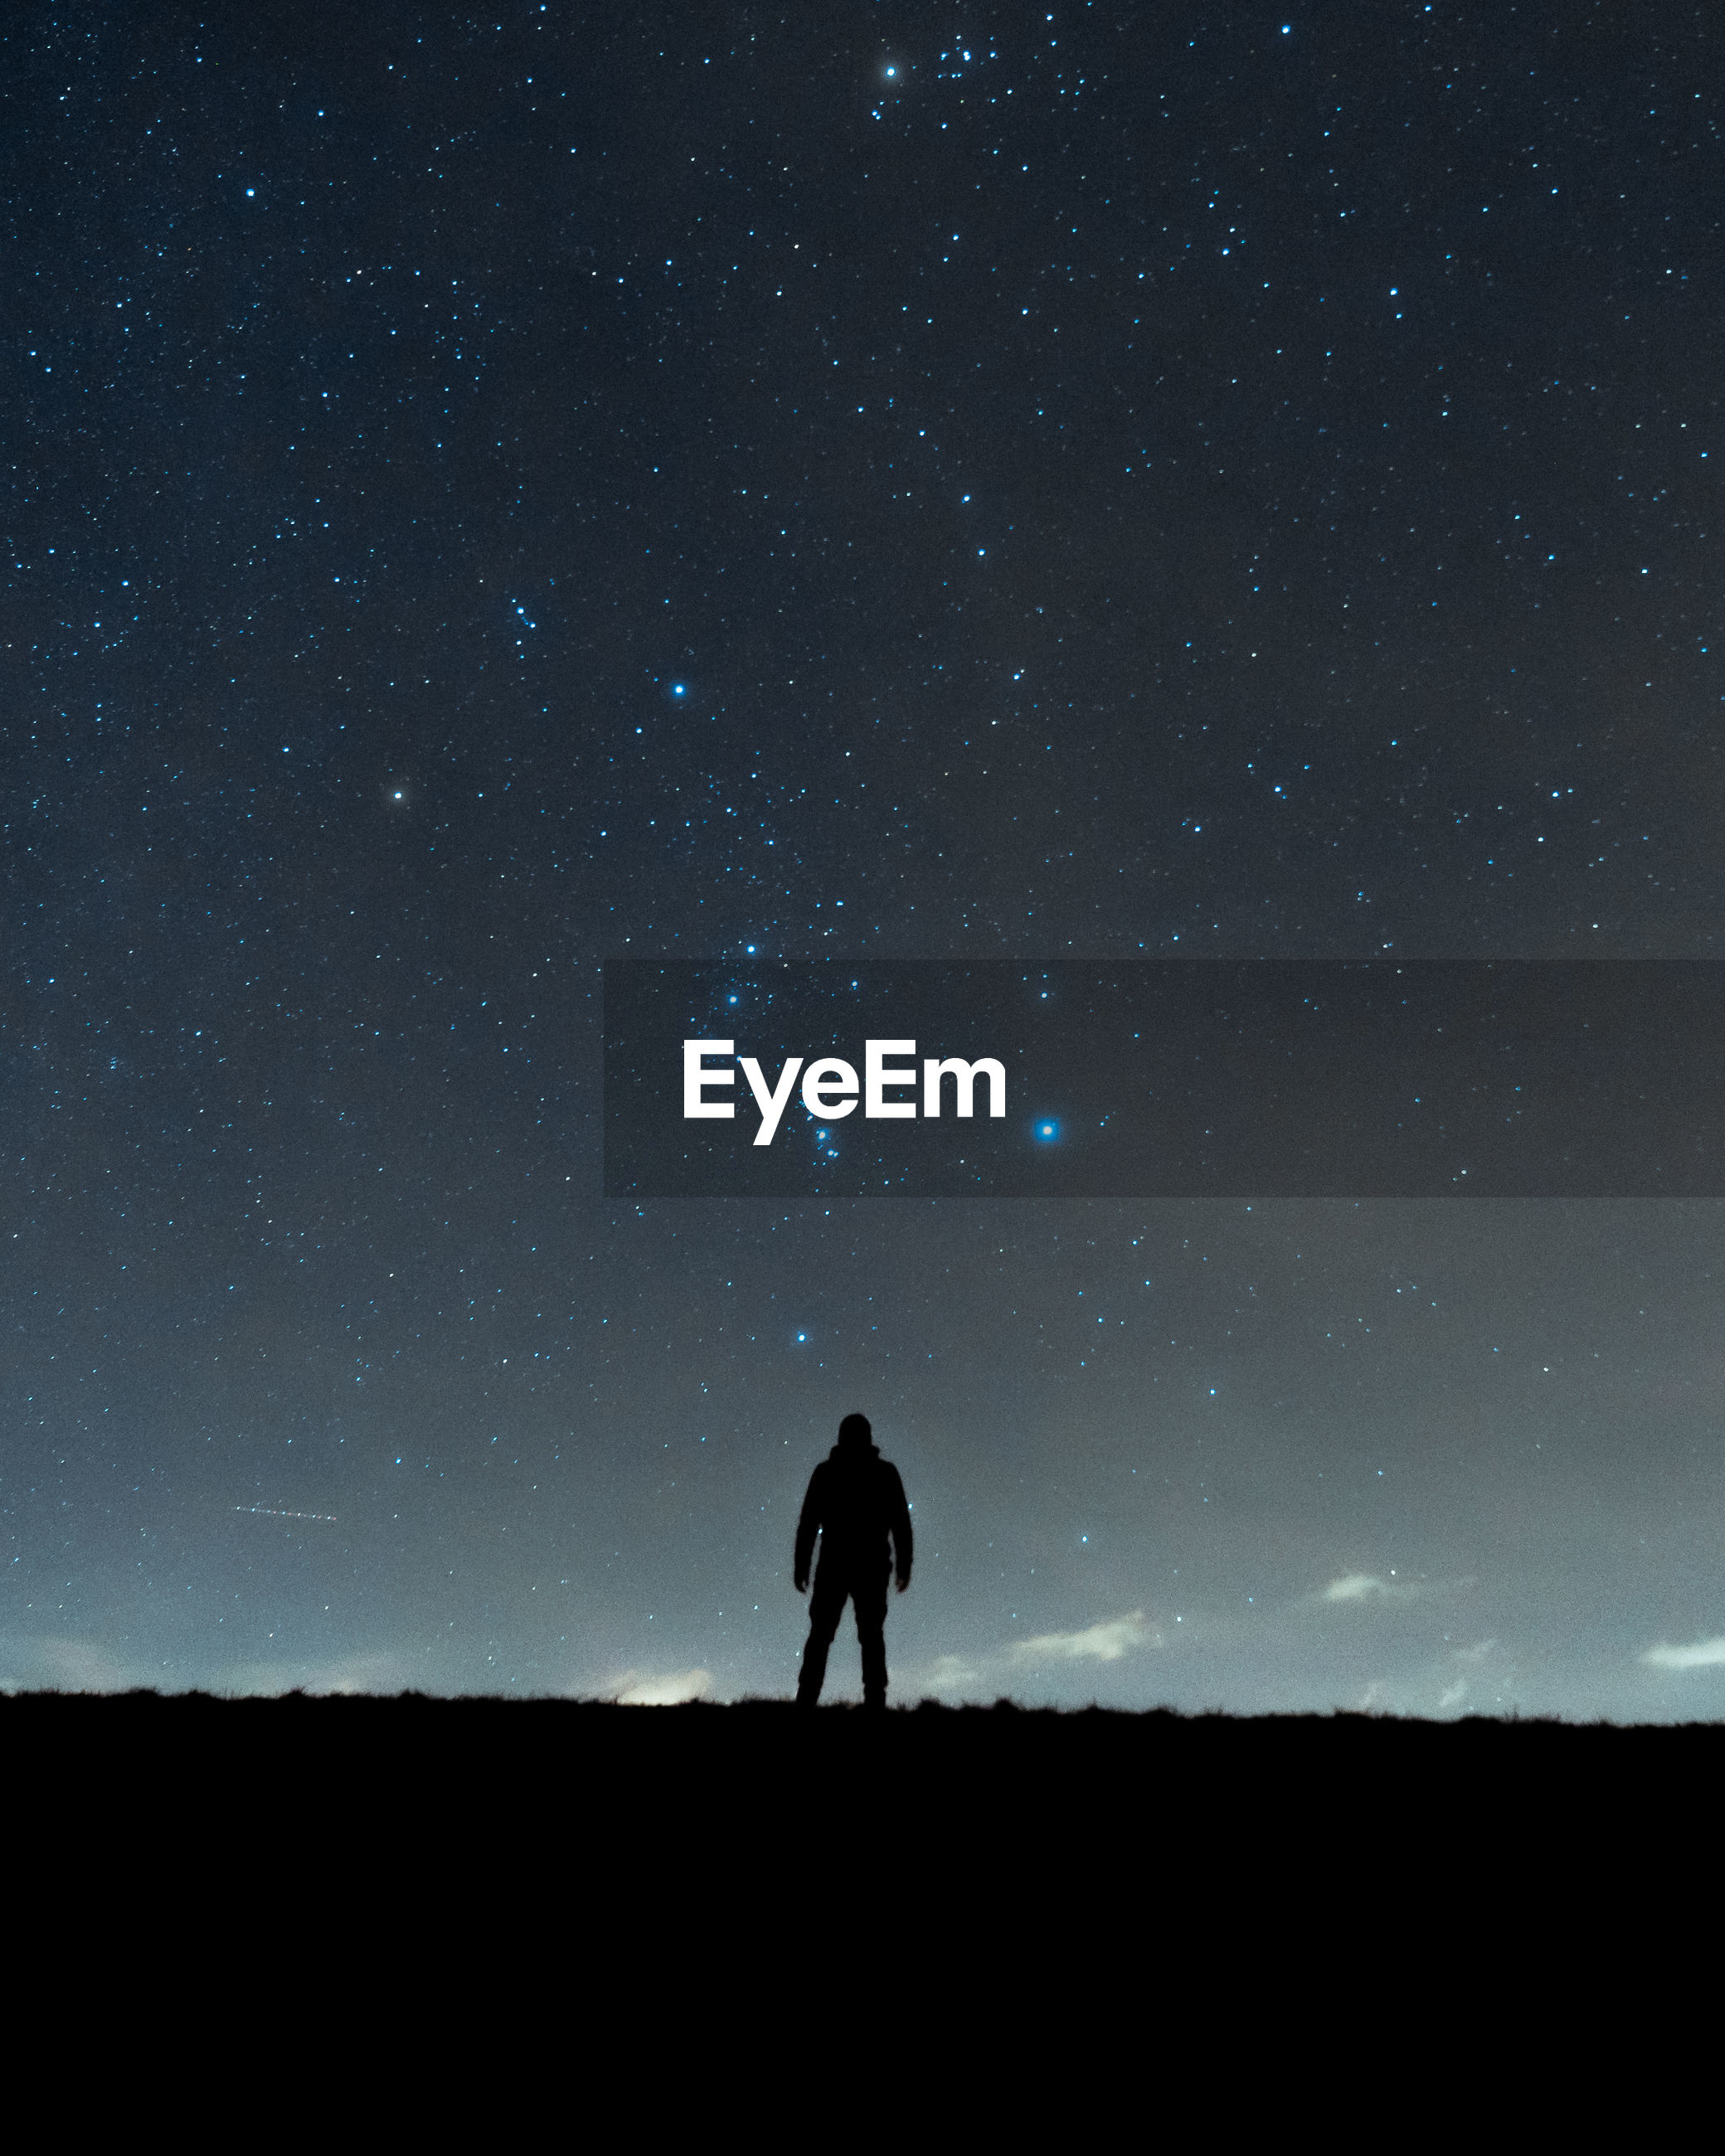 Silhouette man standing on field against sky at night